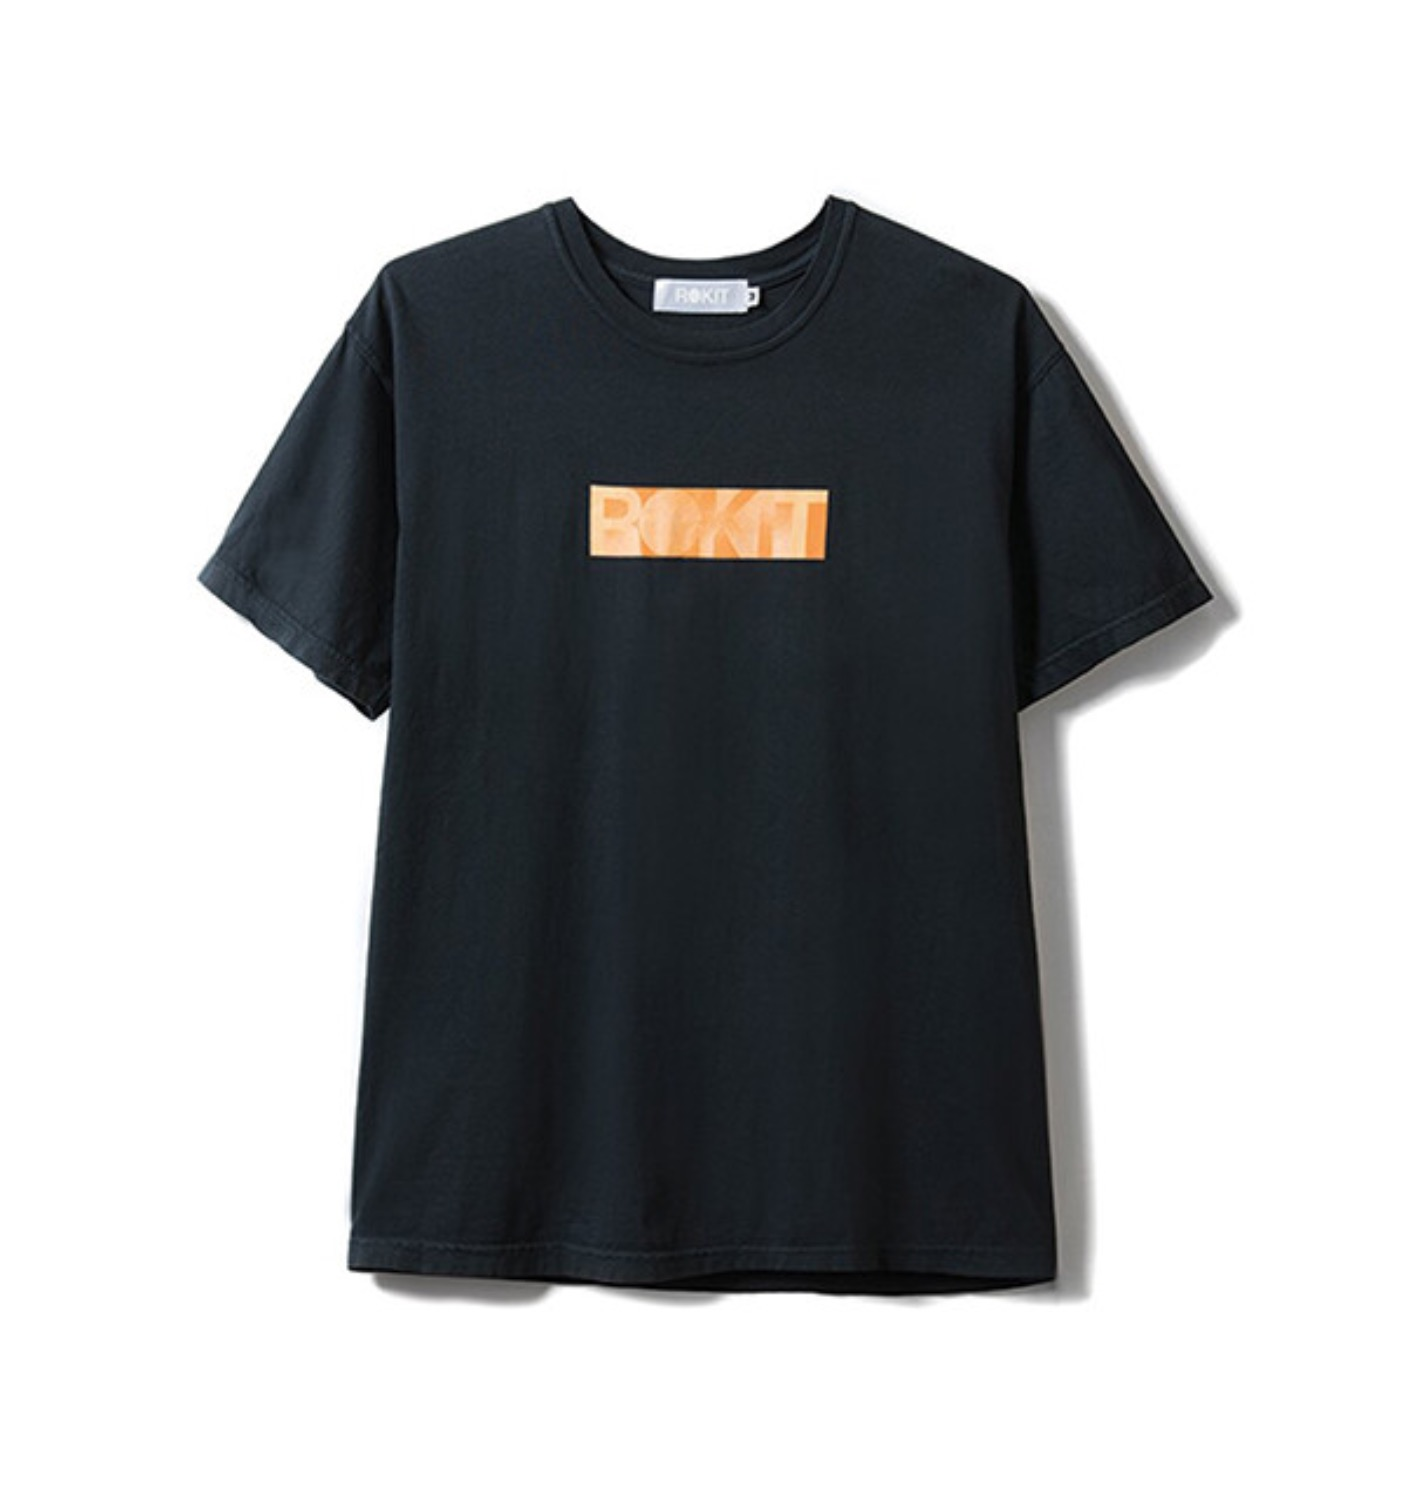 THE FAZE SS TEE BLACK